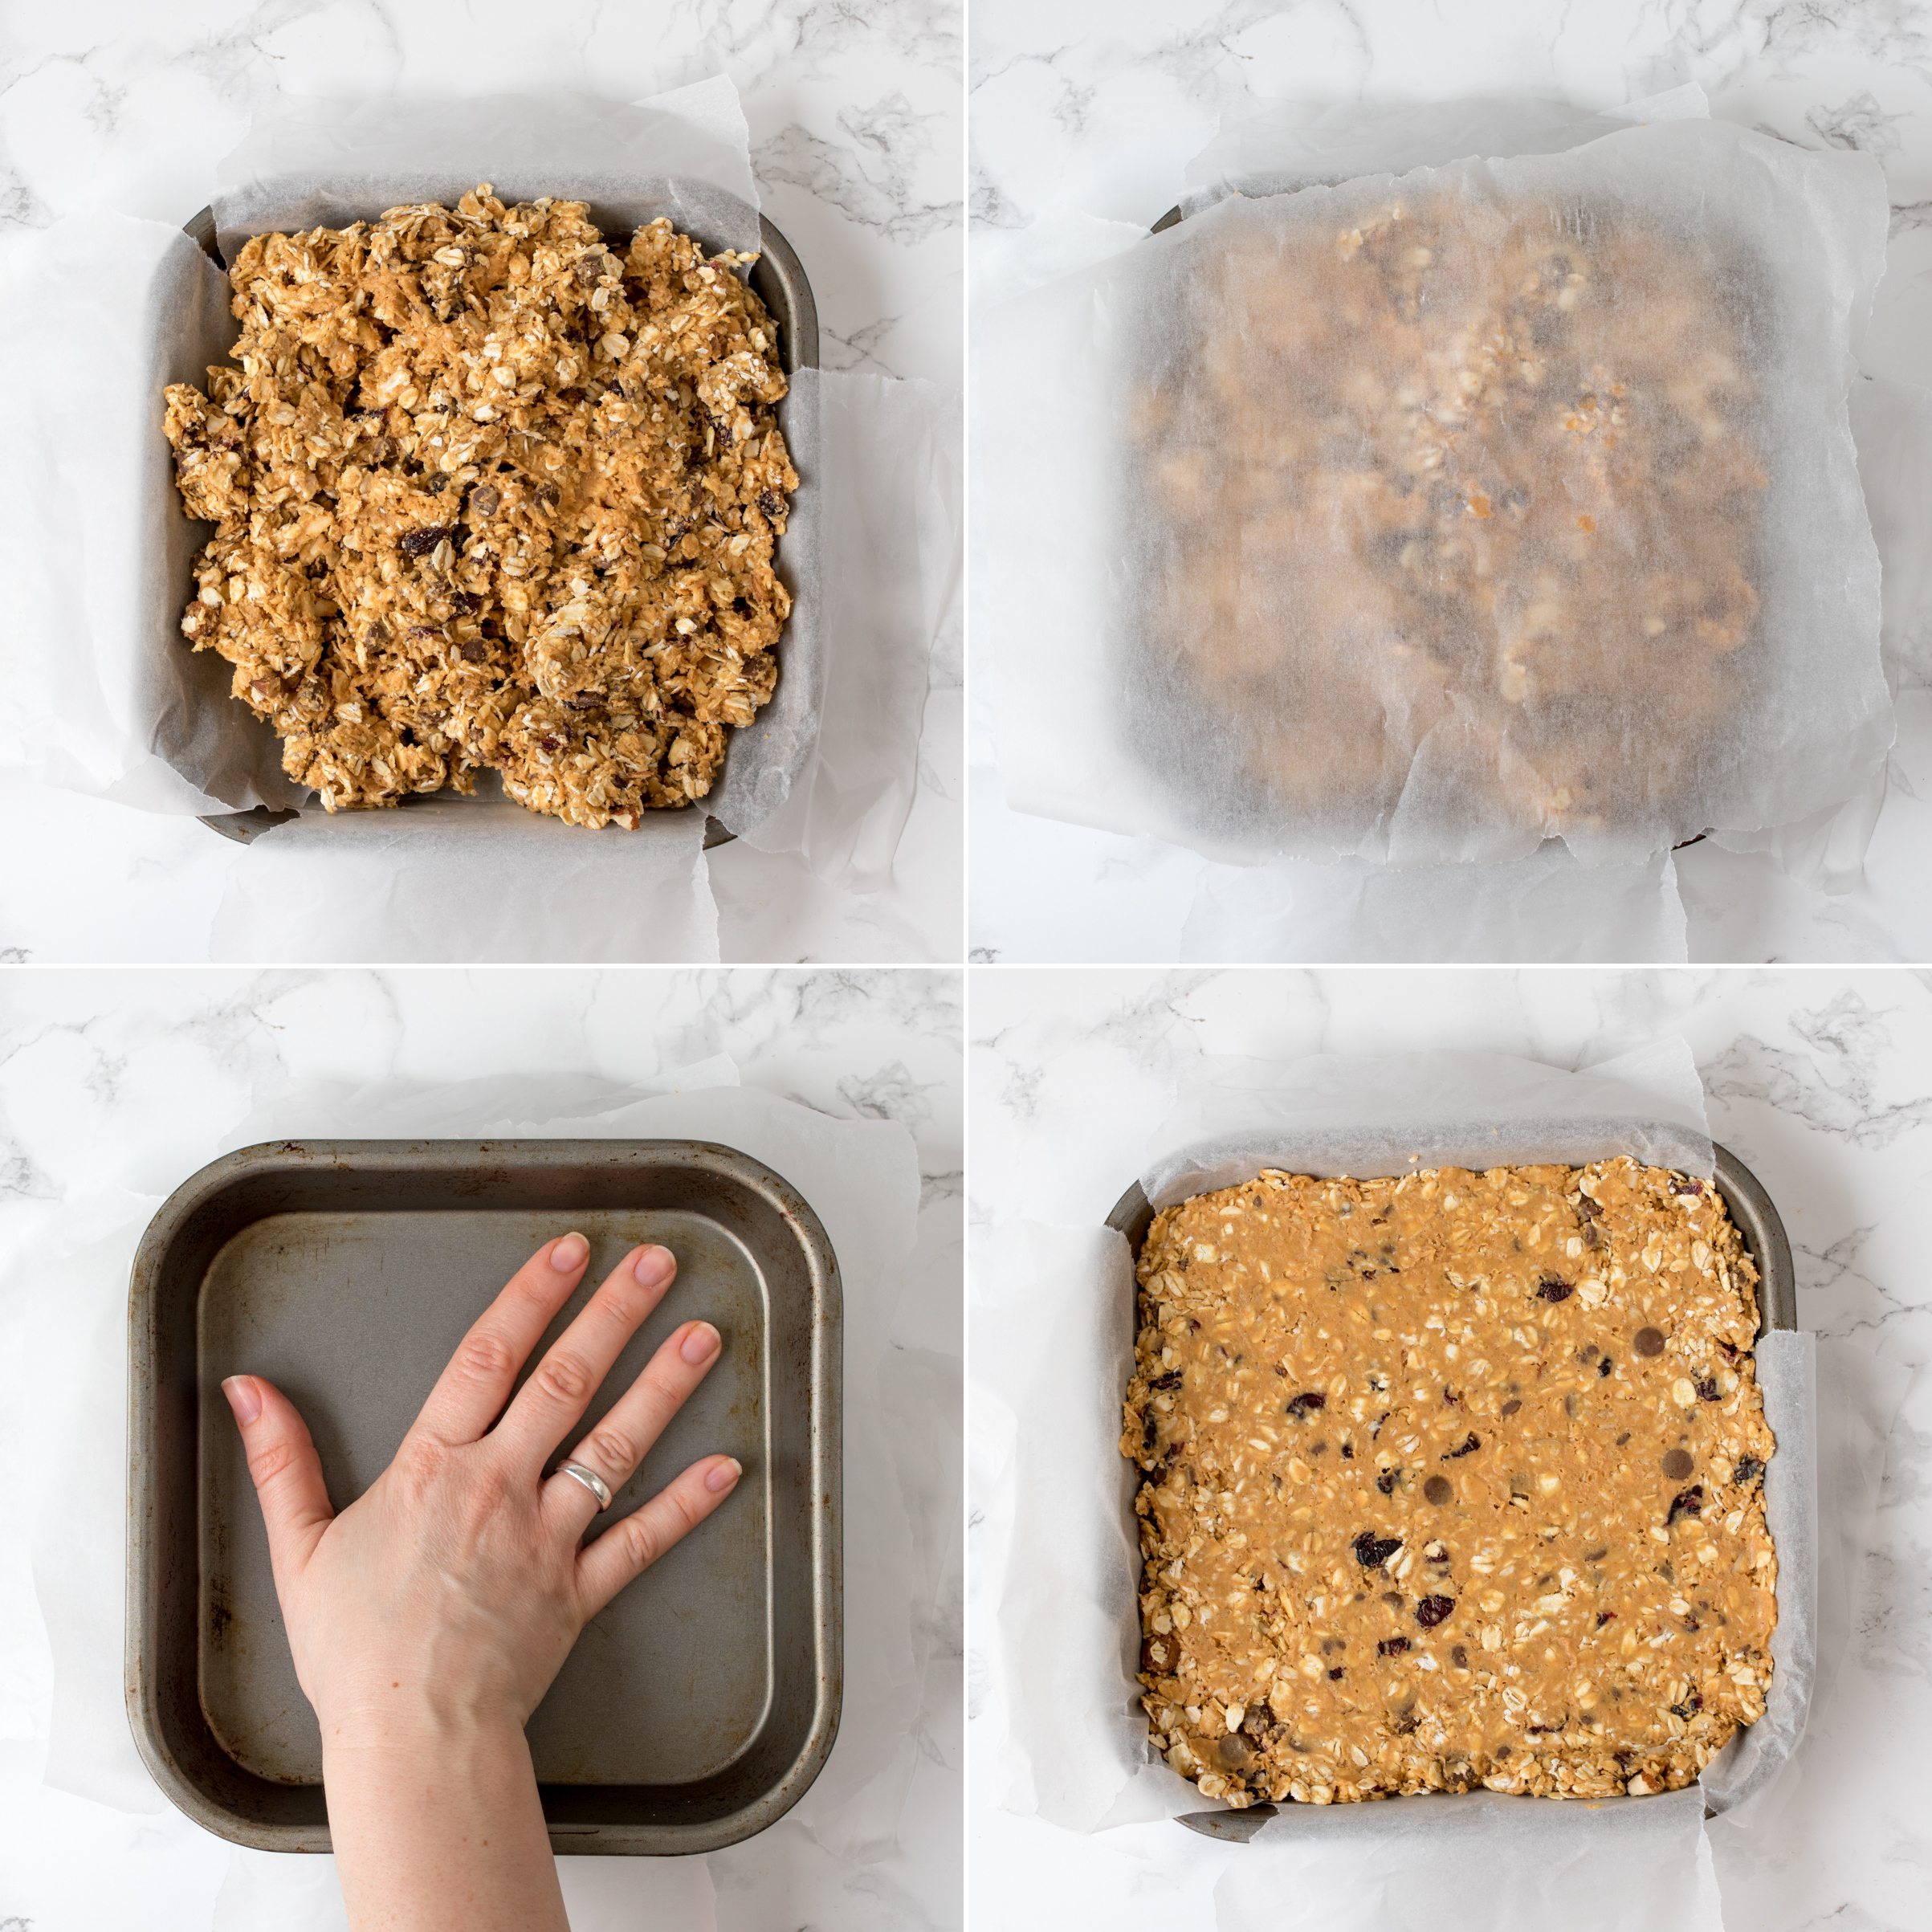 No bake peanut butter granola bars step2 collage